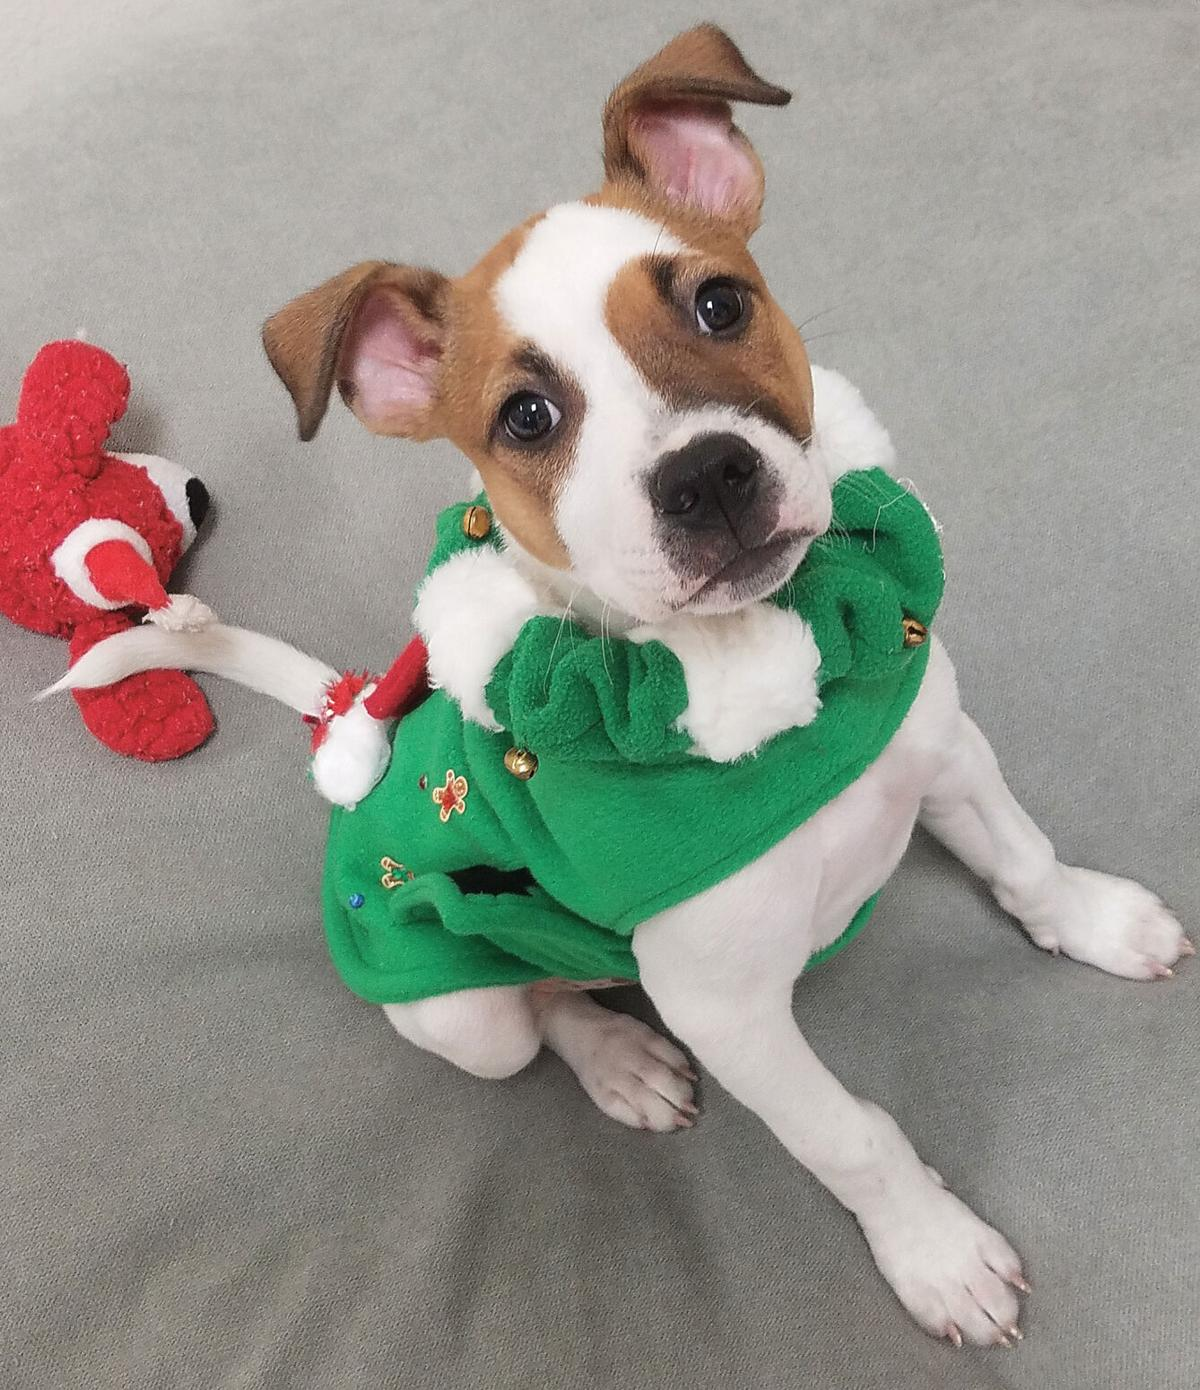 Ugly Pet Sweater contest